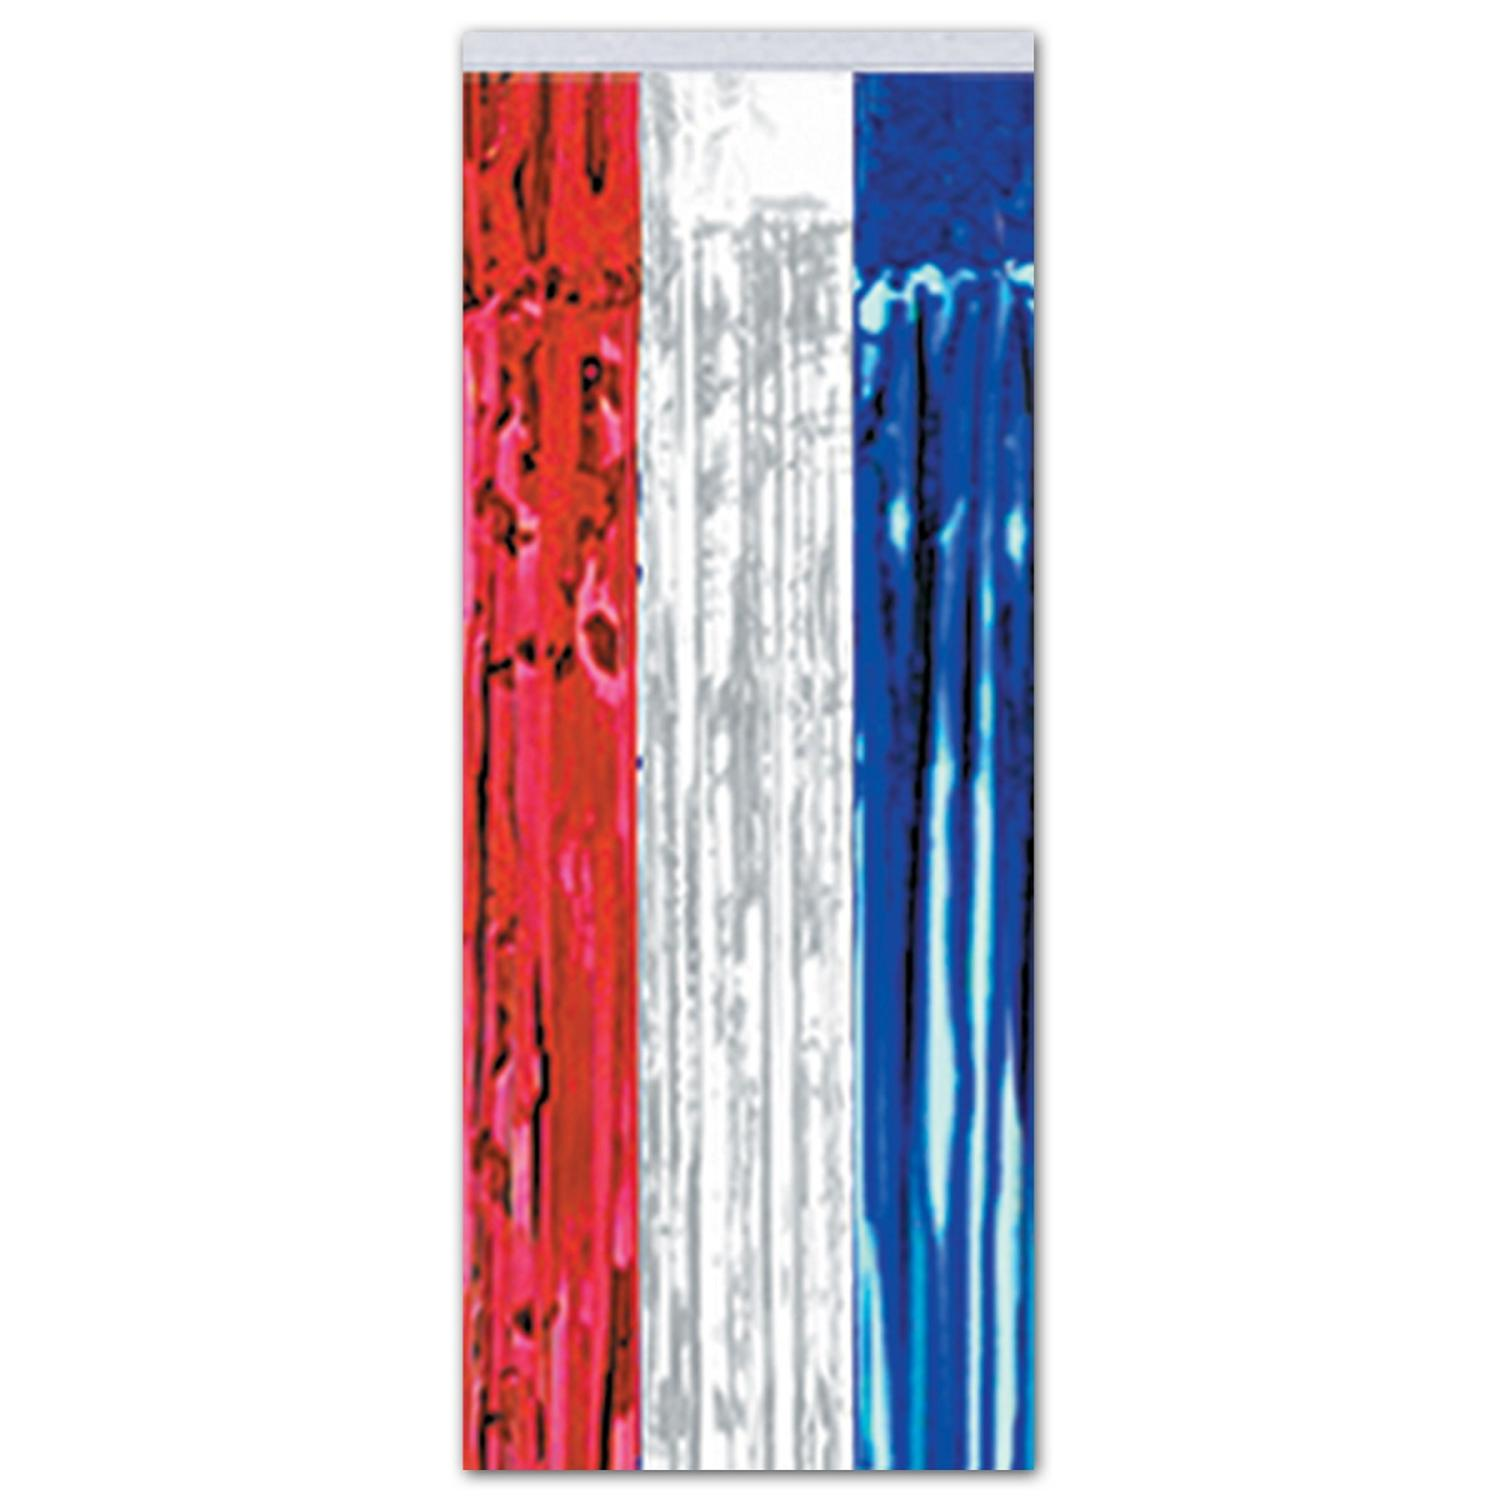 Pack of 6 Patriotic Red, White and Blue Hanging Gleam'n Curtain Party Decorations 8'